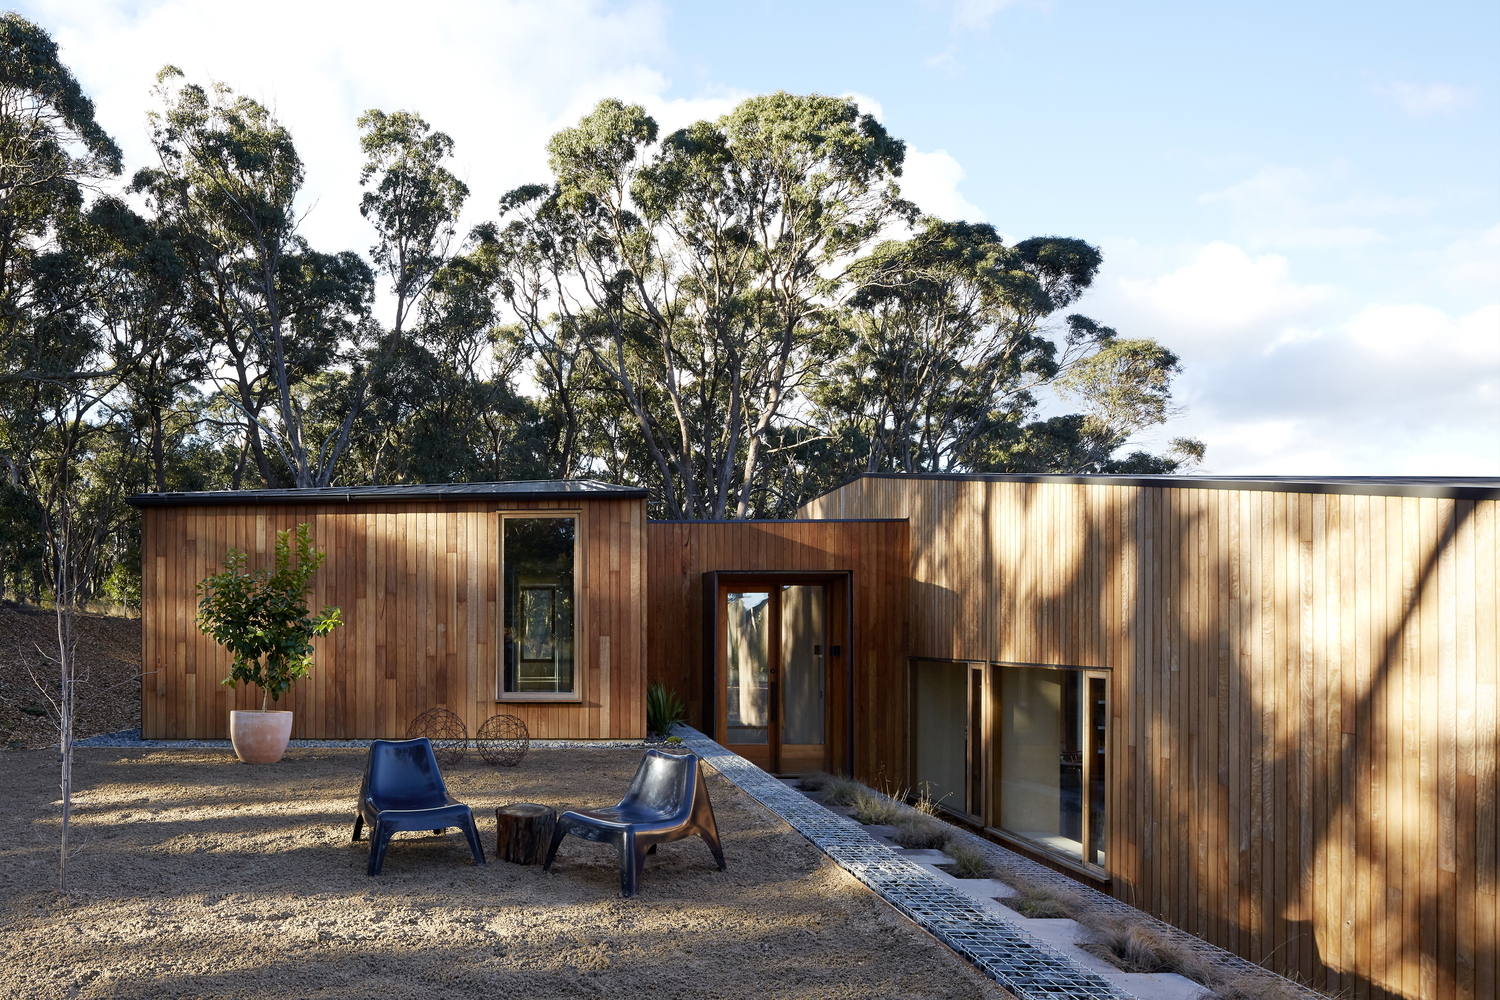 Two Pavilions Encourage a Sociable Lifestyle and Embrace the Bush